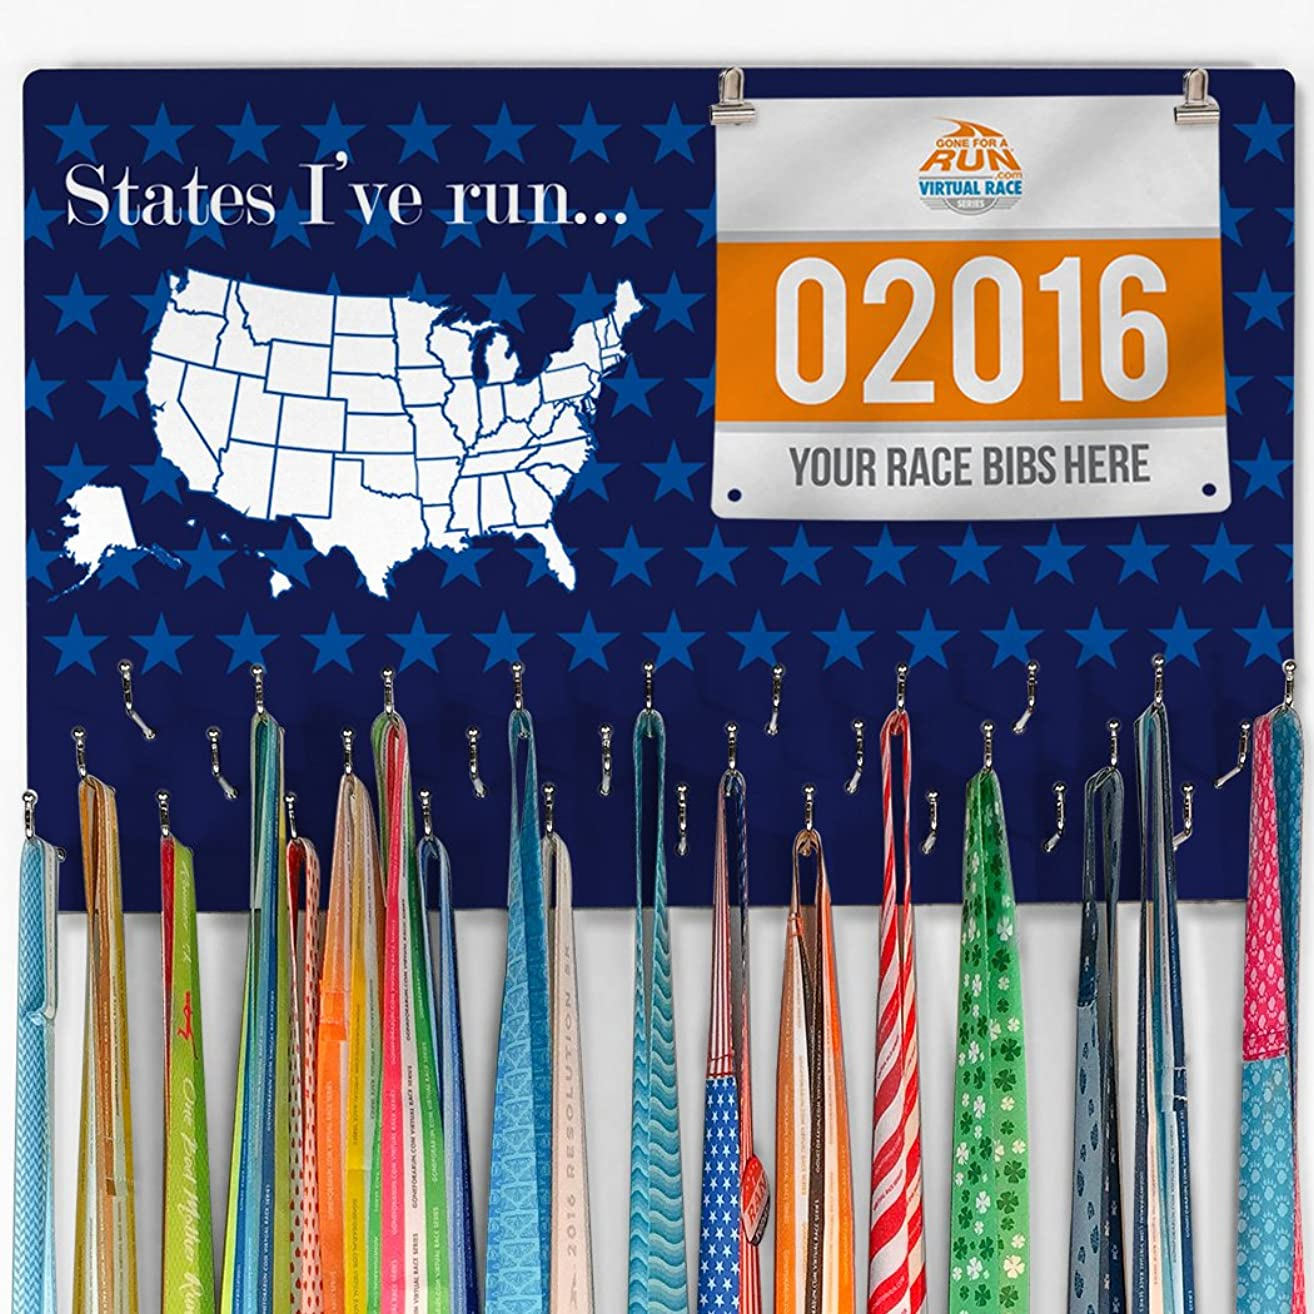 Gone For a Run Hooked On Medals and Bibs | Medal Hanger and Bib Display | Running The USA Color in Map